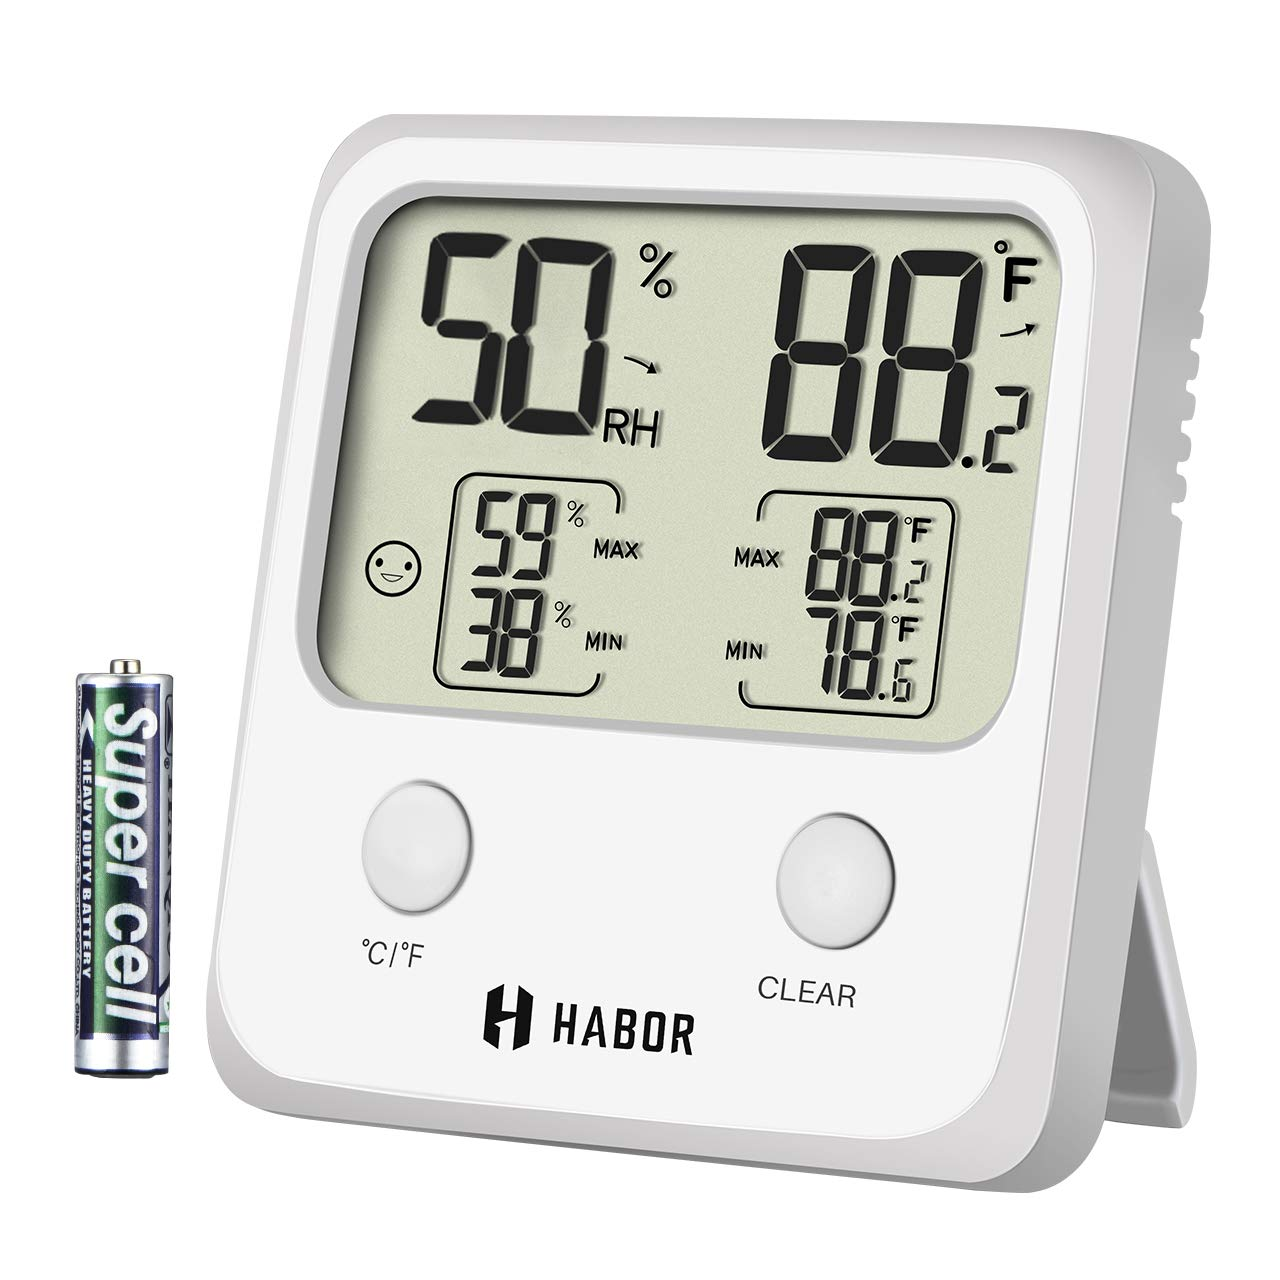 Habor Upgraded Indoor Thermometer, Digital Indoor Hygrometer,Large Size Temperature Humidity Monitor High Accuracy Thermometer Gauge Indicator Home Office Greenhouse, White (3.3 X 3.2 Inch) by Habor